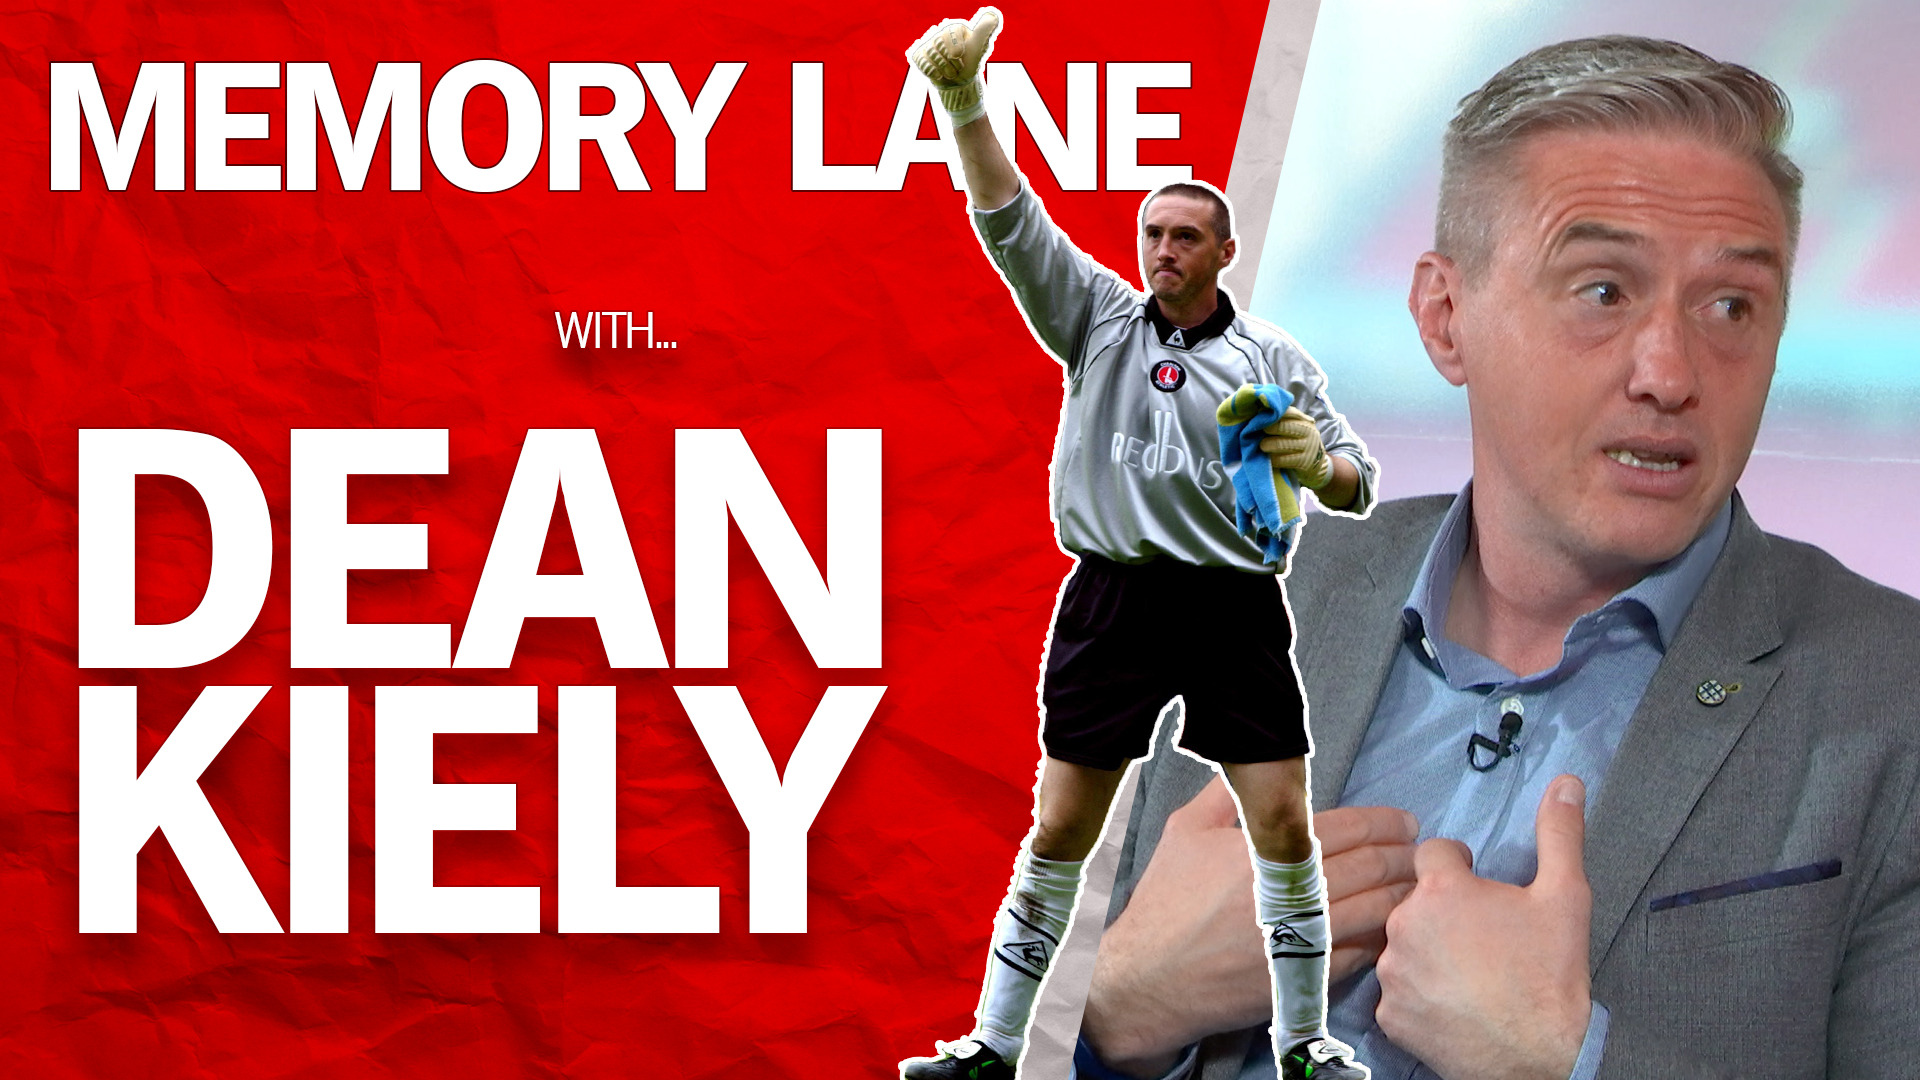 MEMORY LANE | Dean Kiely (April 2021)